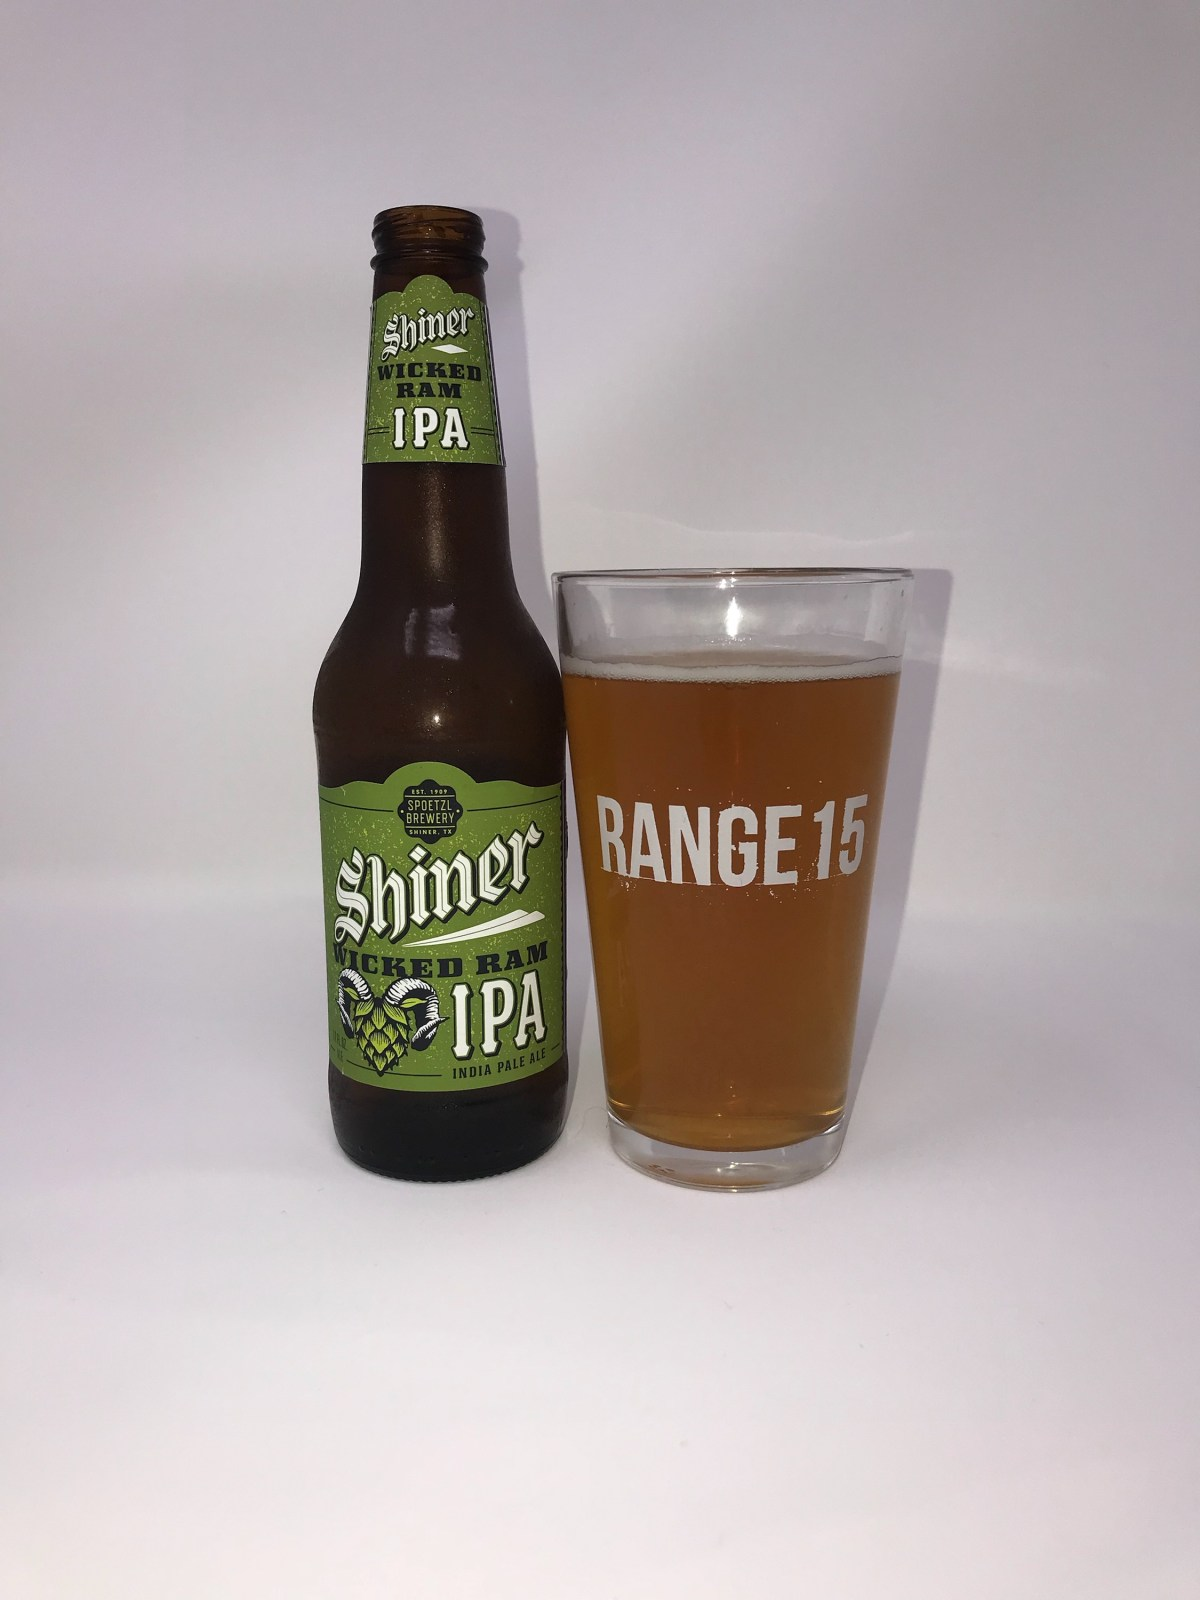 Shiner Wicked Ram IPA Review